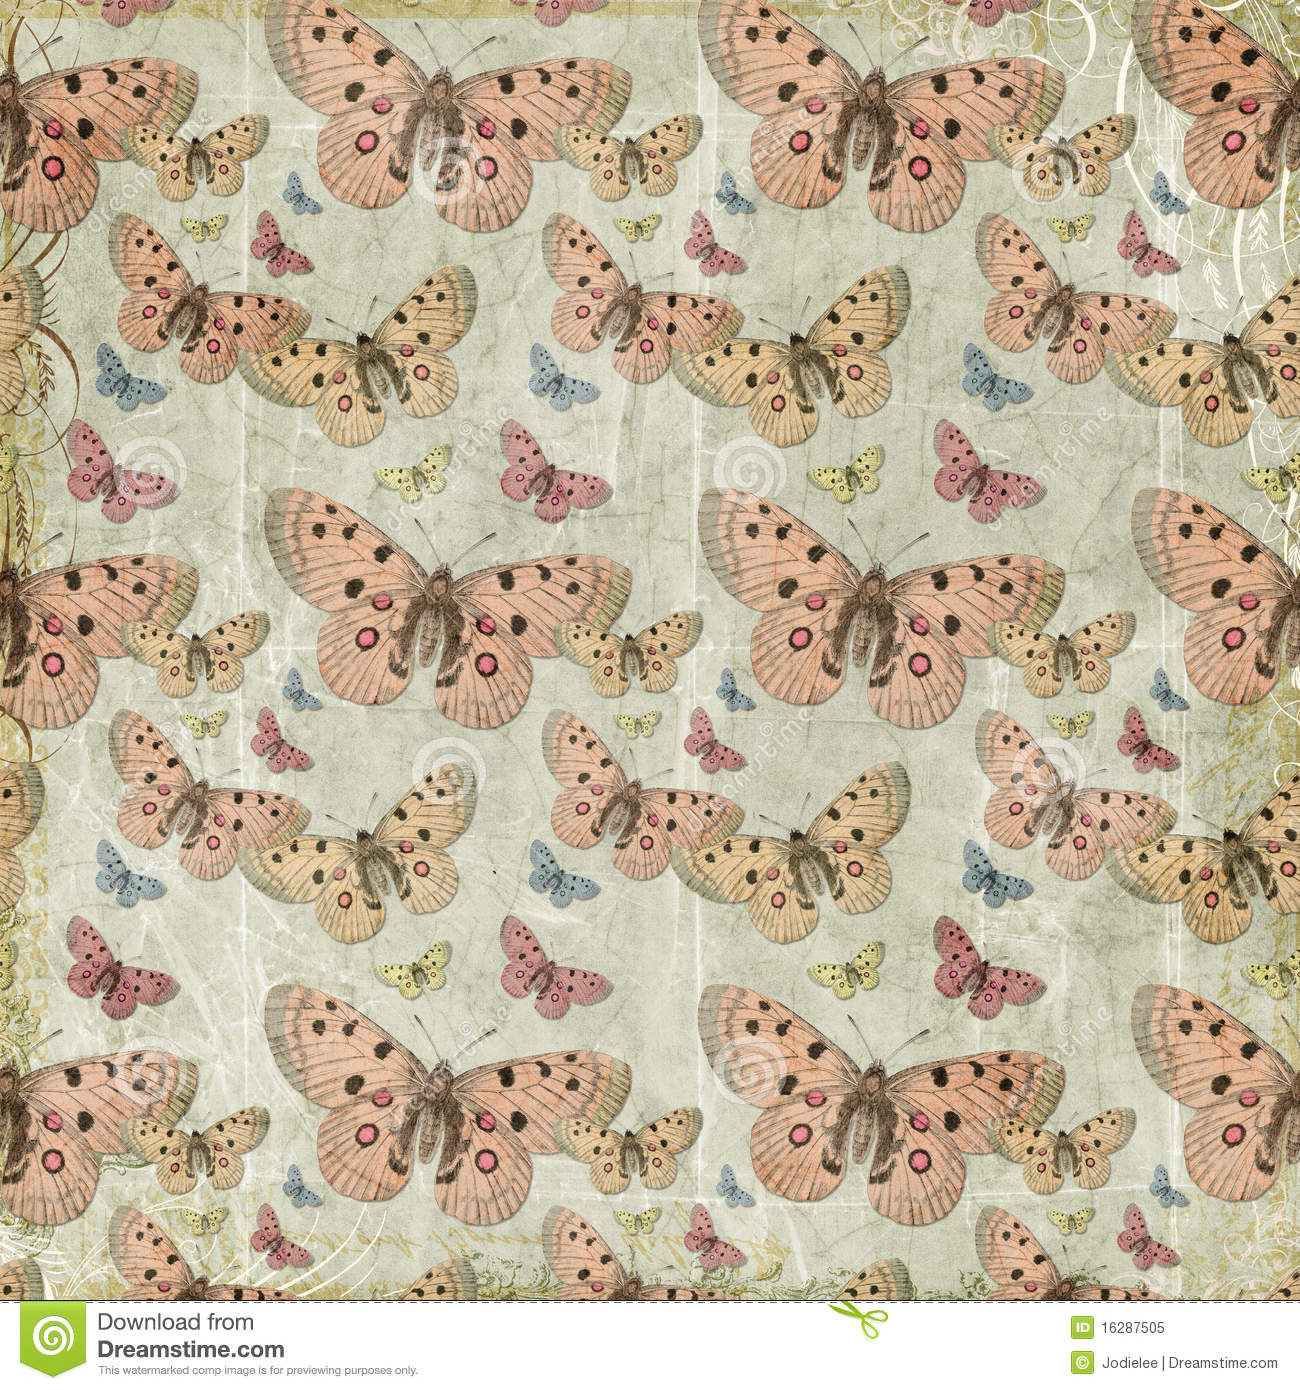 Pink butterflies repeat pattern background